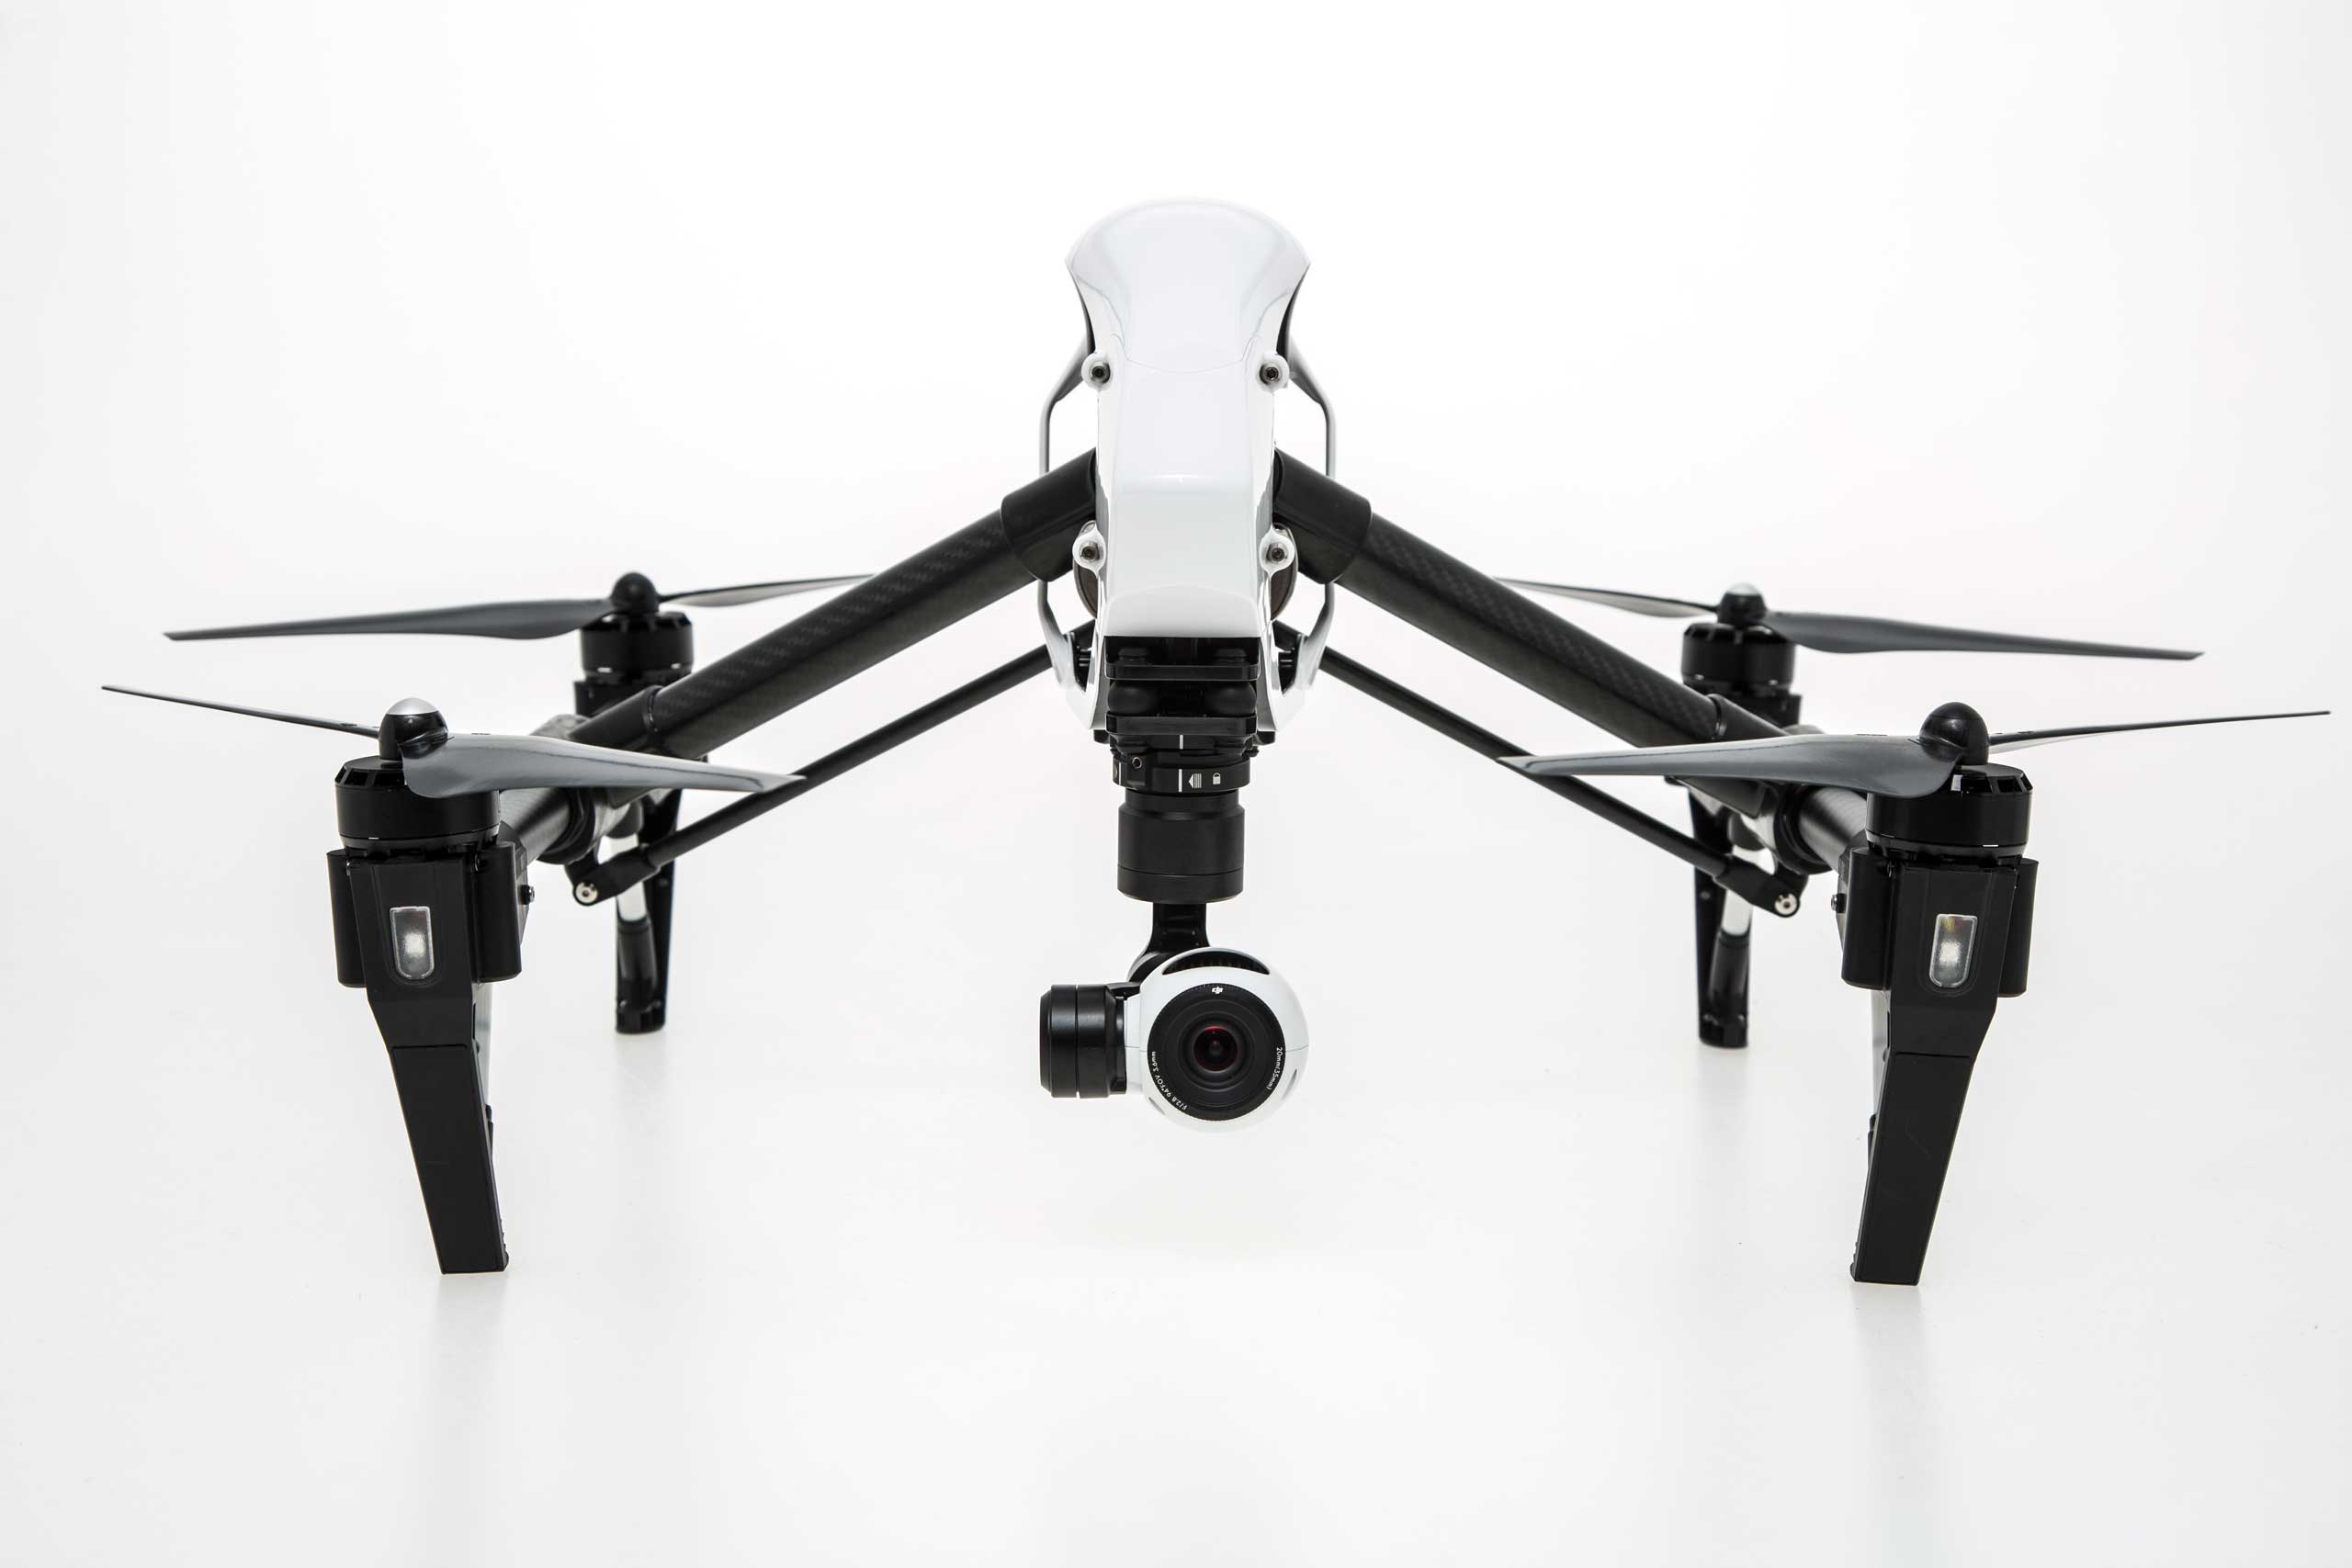 <strong>DJI Inspire 1                                   </strong>                                                                      The latest DJI quadcopter retains the simple style that's made their drones so popular, but adds 4K video capability — and the ability to transmit the HD video wirelessly to an on-the-ground devices. A new ground-facing camera also allows Inspire 1 to fly steadily to keep the video footage clean.